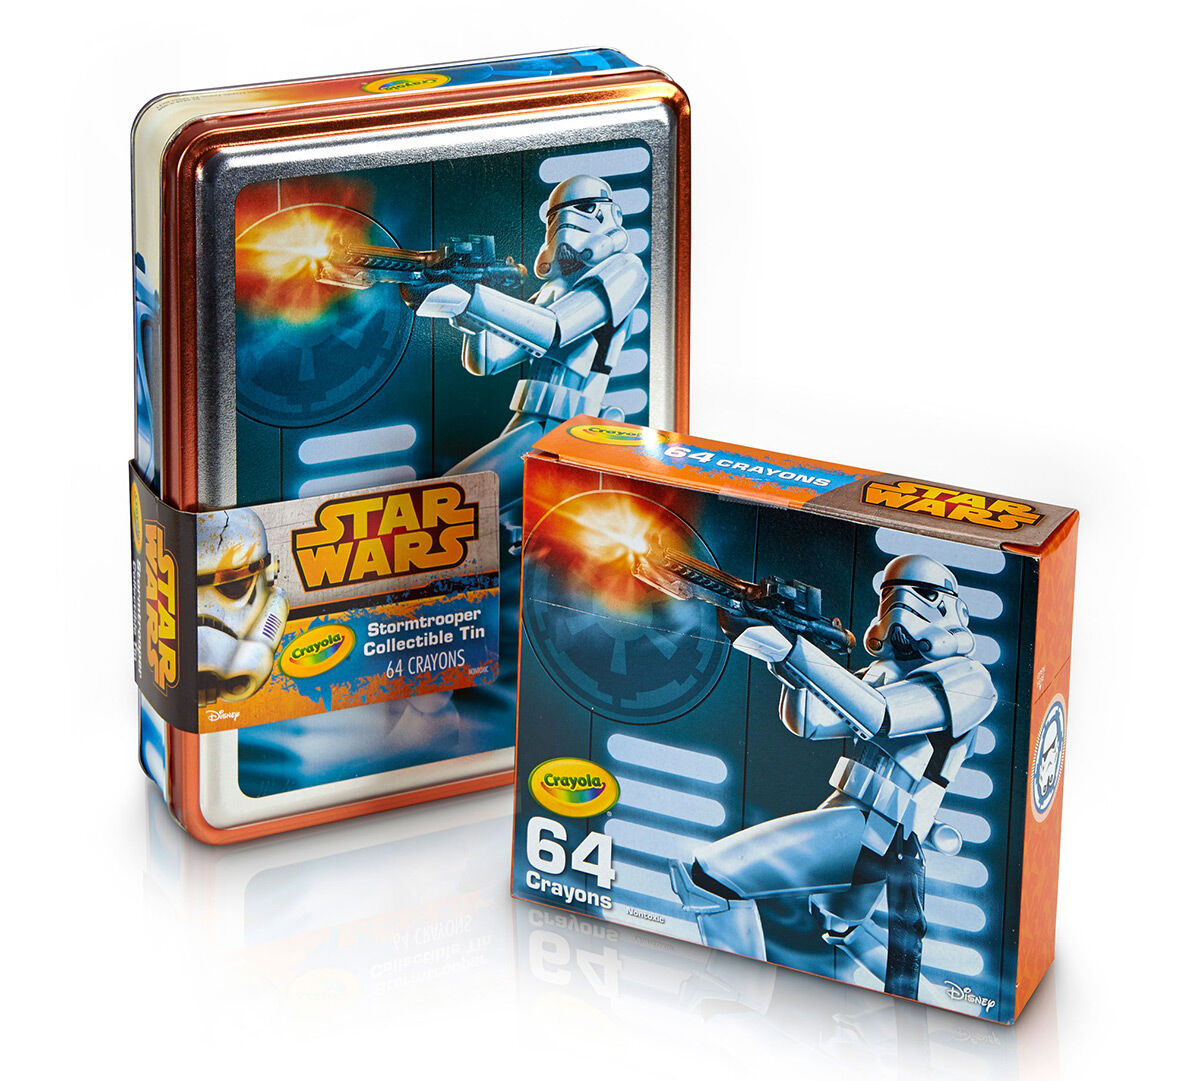 Star Wars, Stormtrooper Tin and Crayon Box